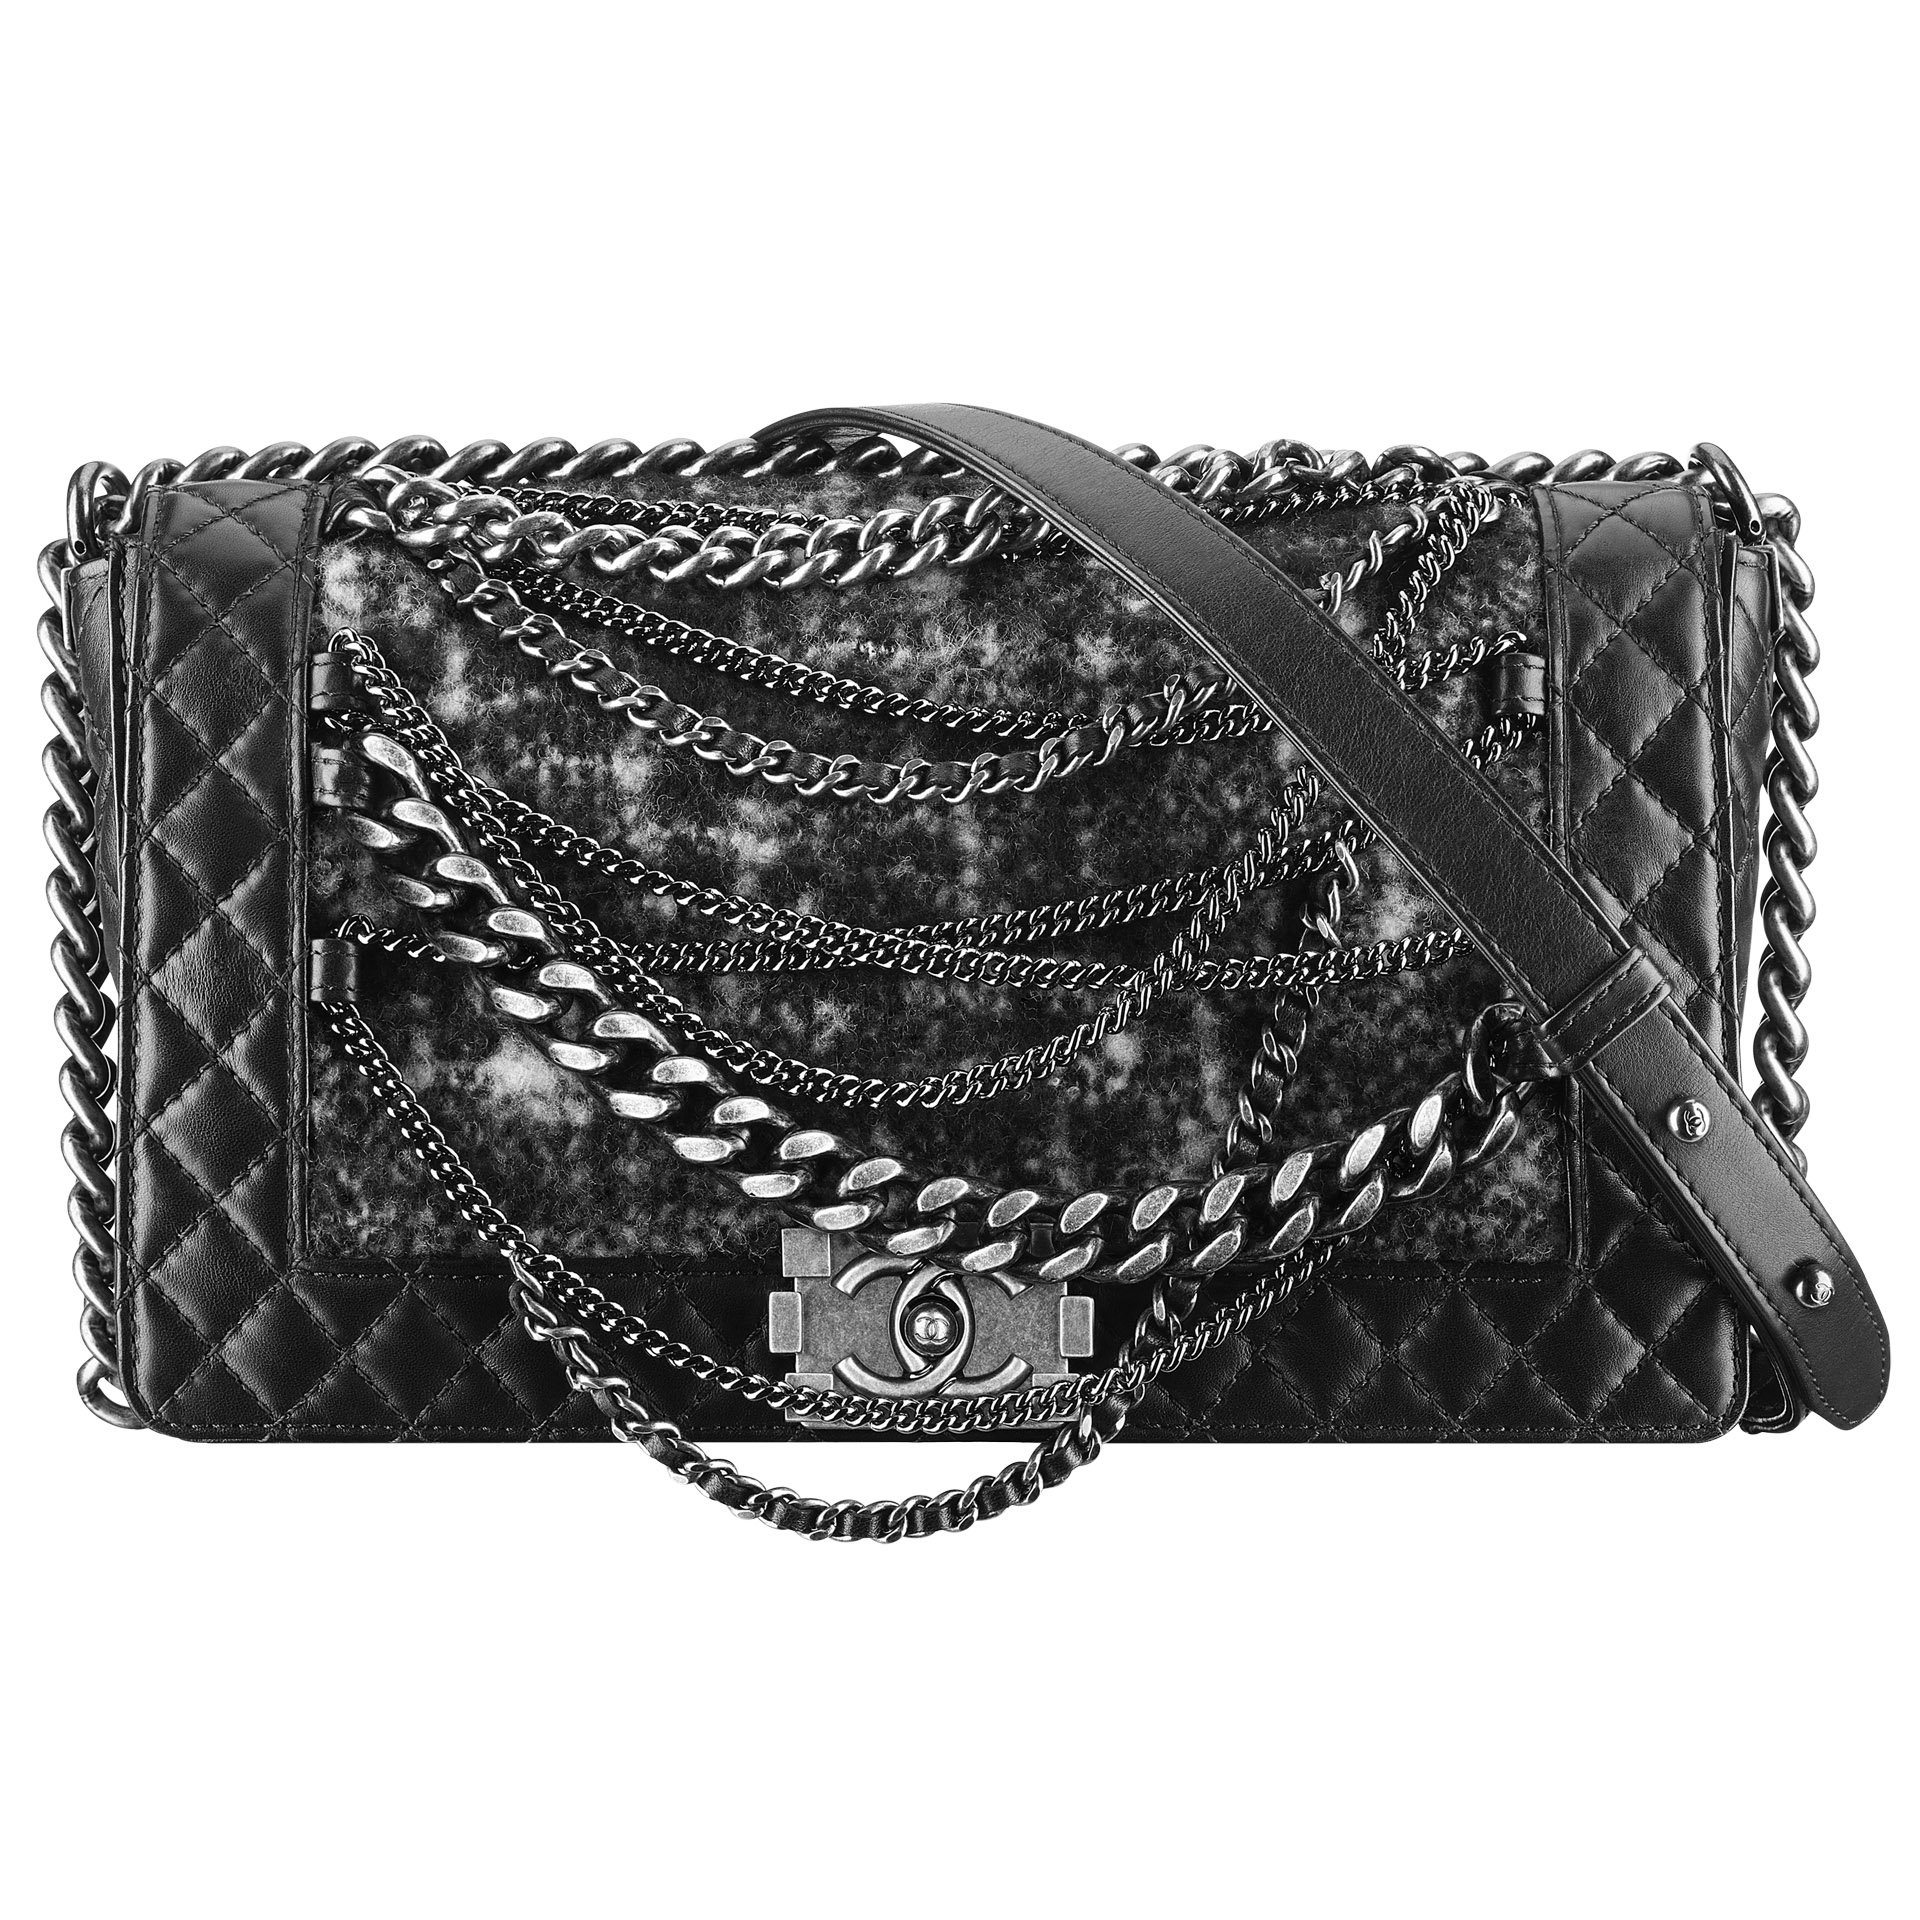 2 - Black-tweed-and-leather-BOY-CHANEL-bag-with-chains